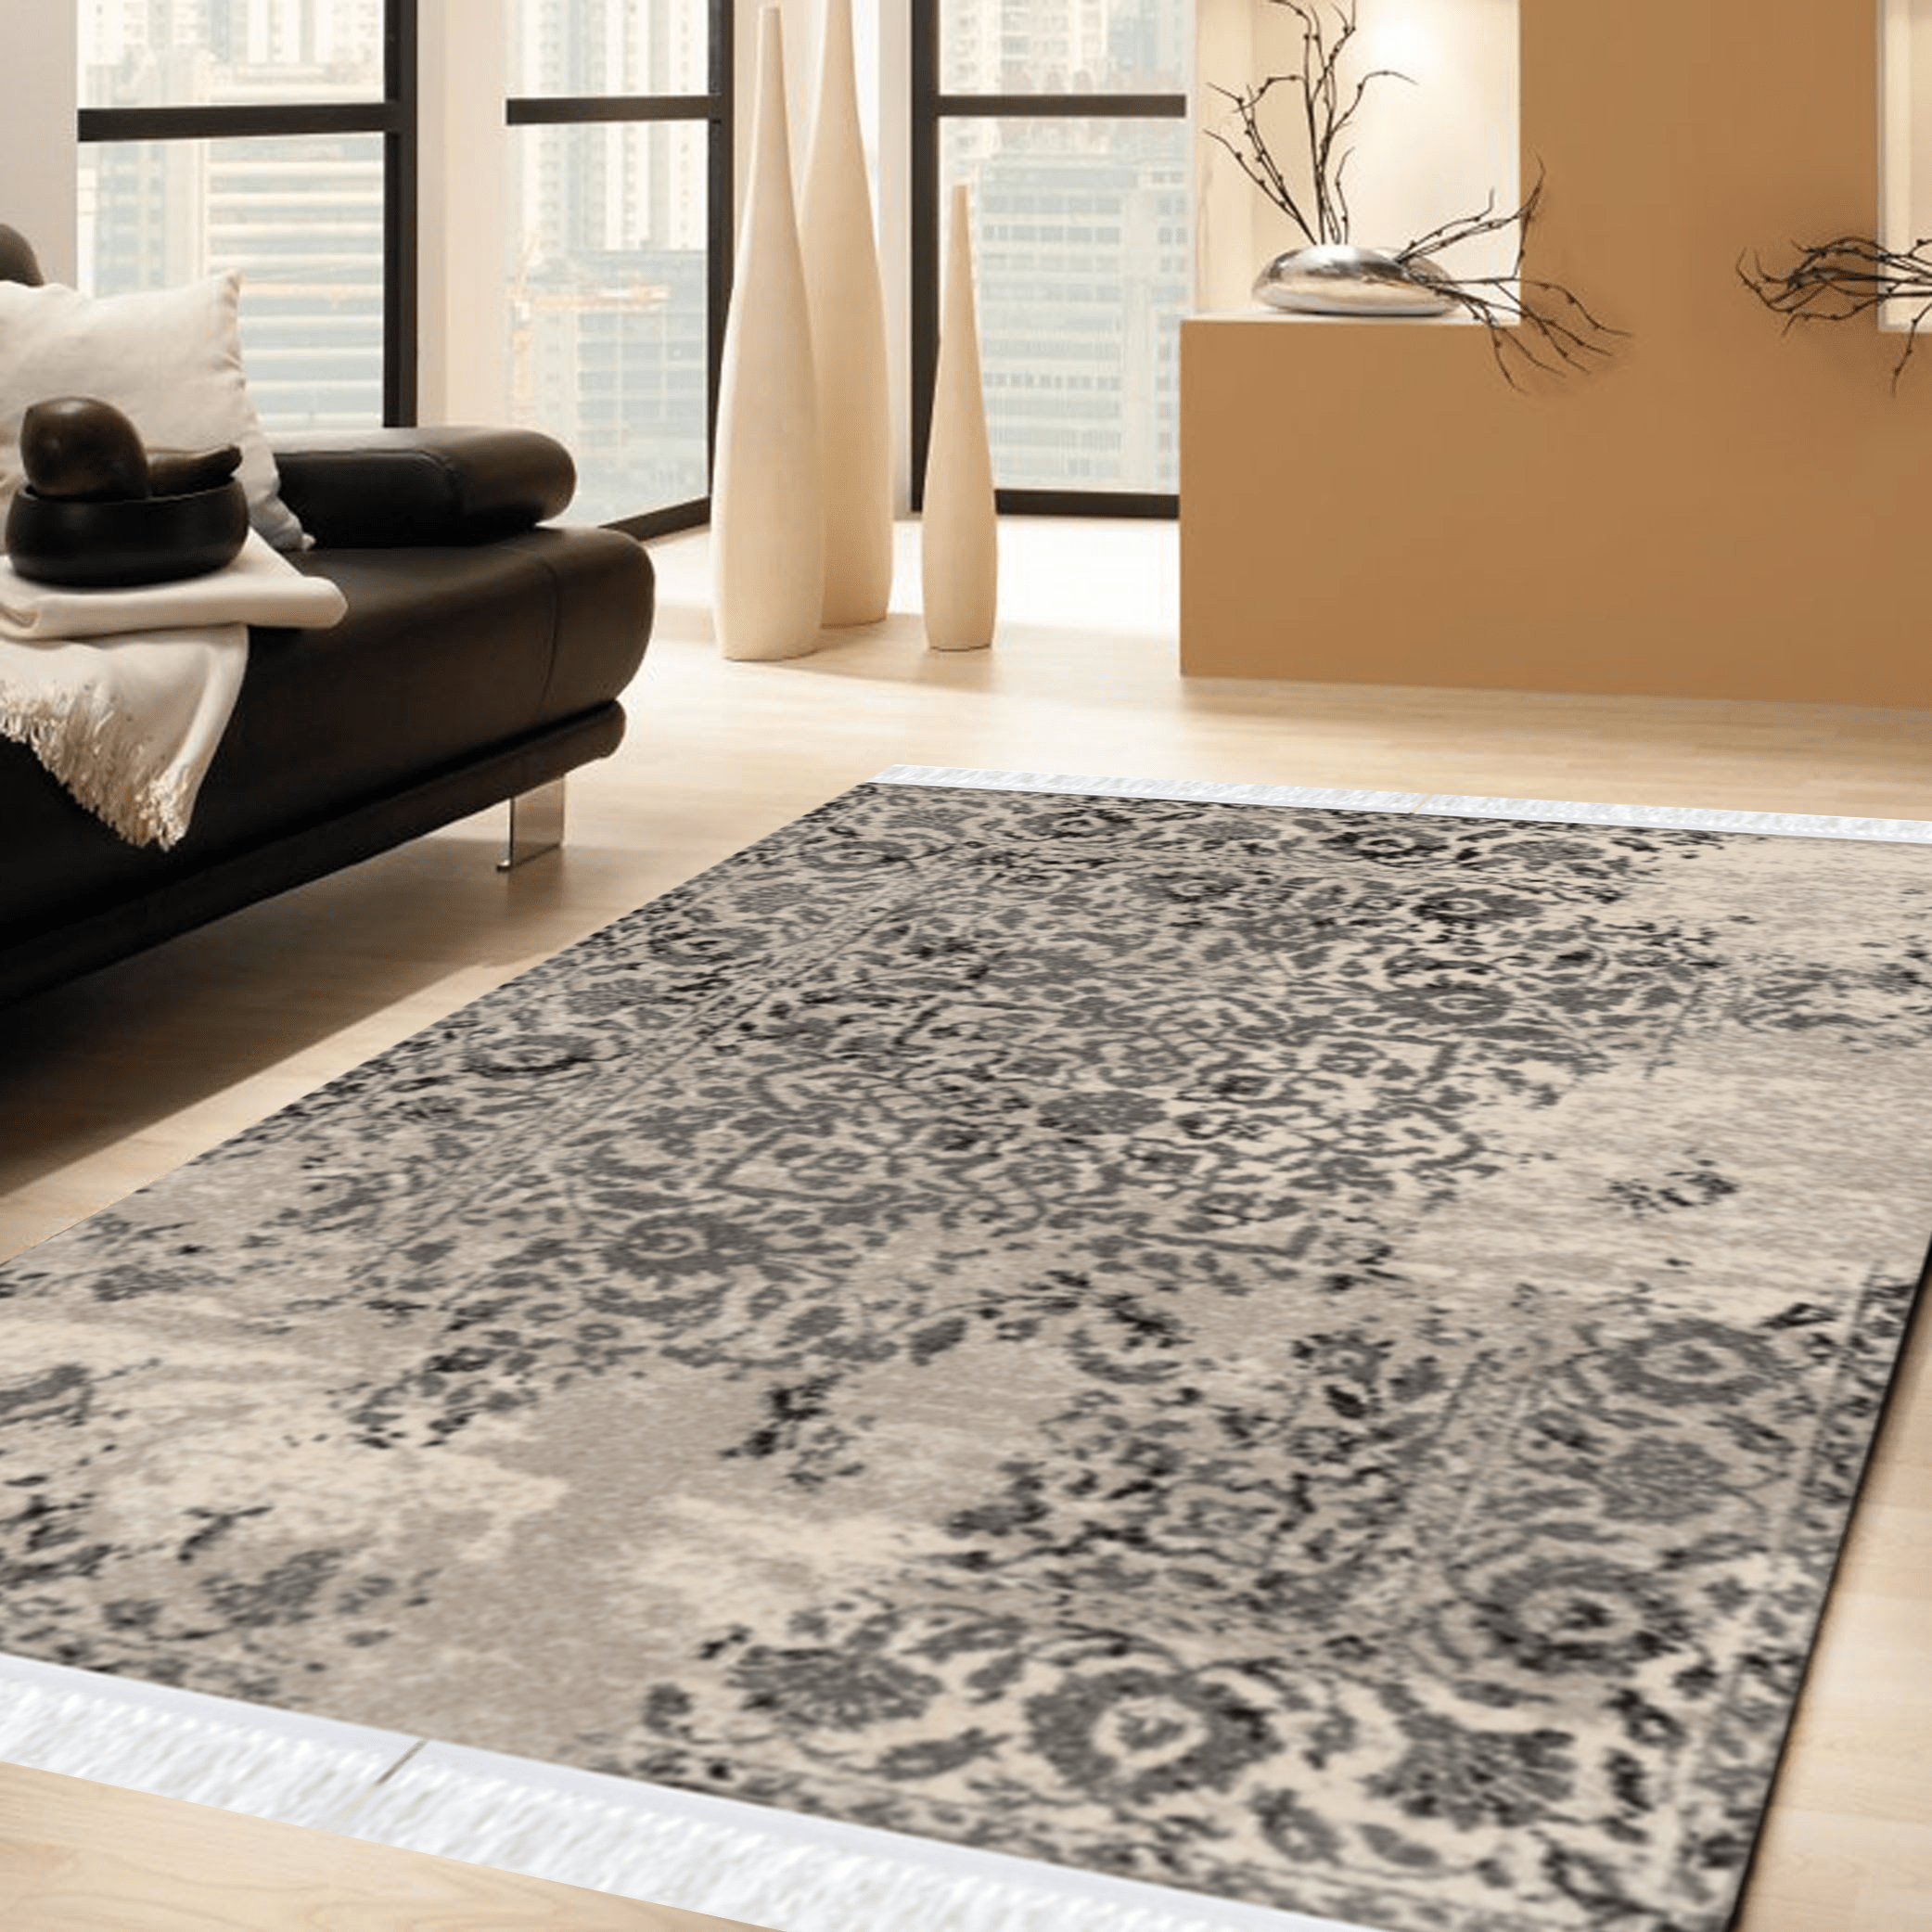 Teppichboden Paderborn Germany Carpet Germany Carpet Manufacturers And Suppliers On